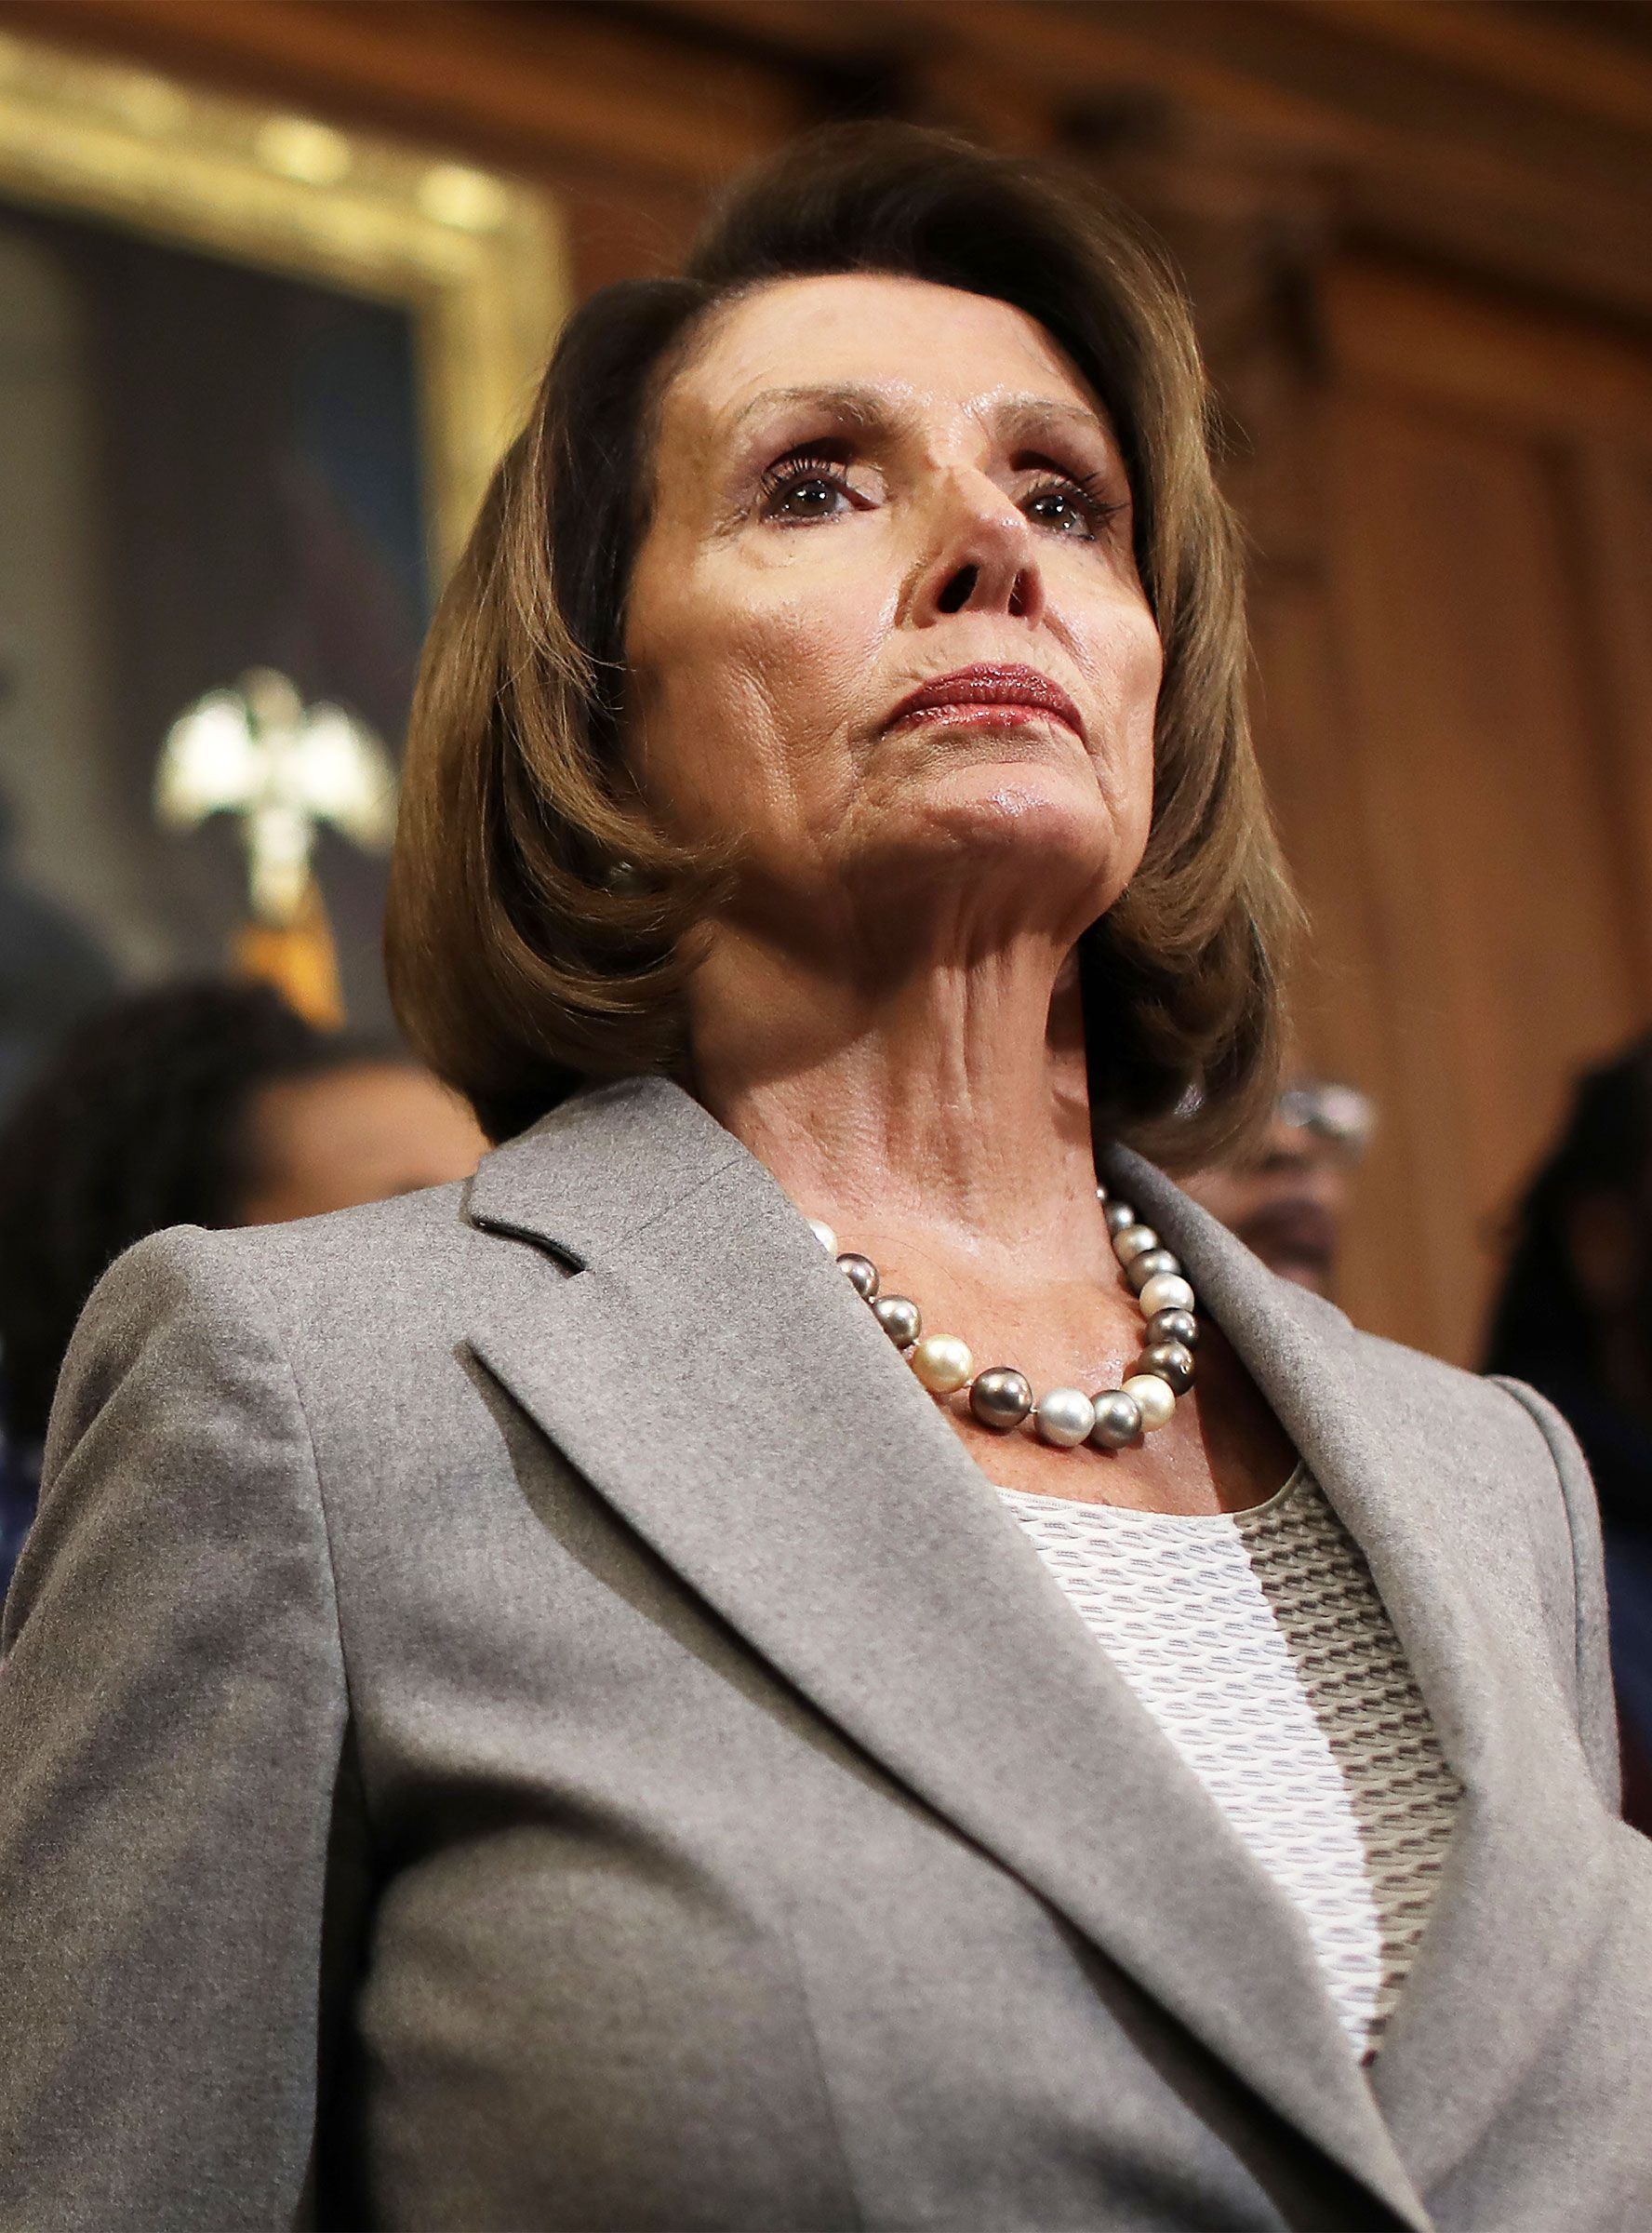 Nancy Pelosi S Body Language Sends A Strong Message About